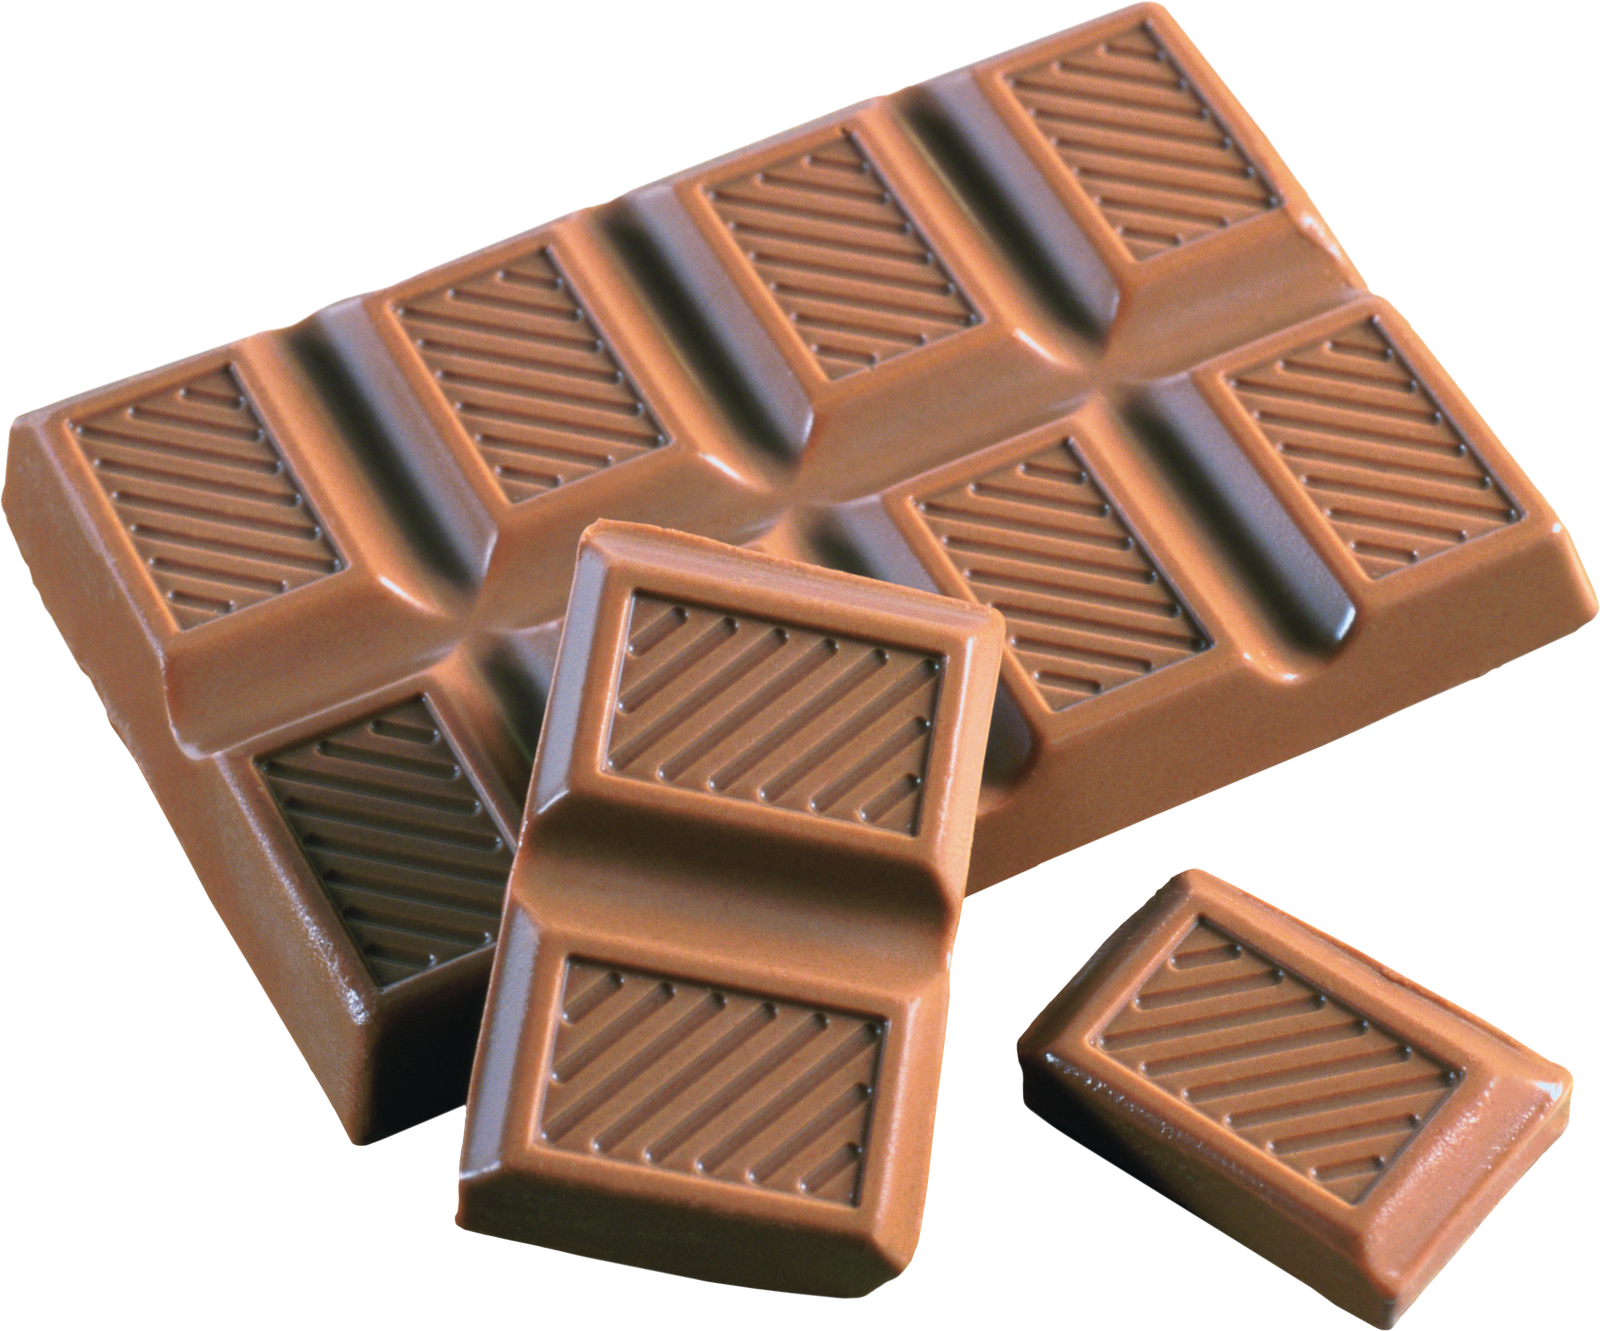 Chocolate bar PNG image - Chocolate PNG